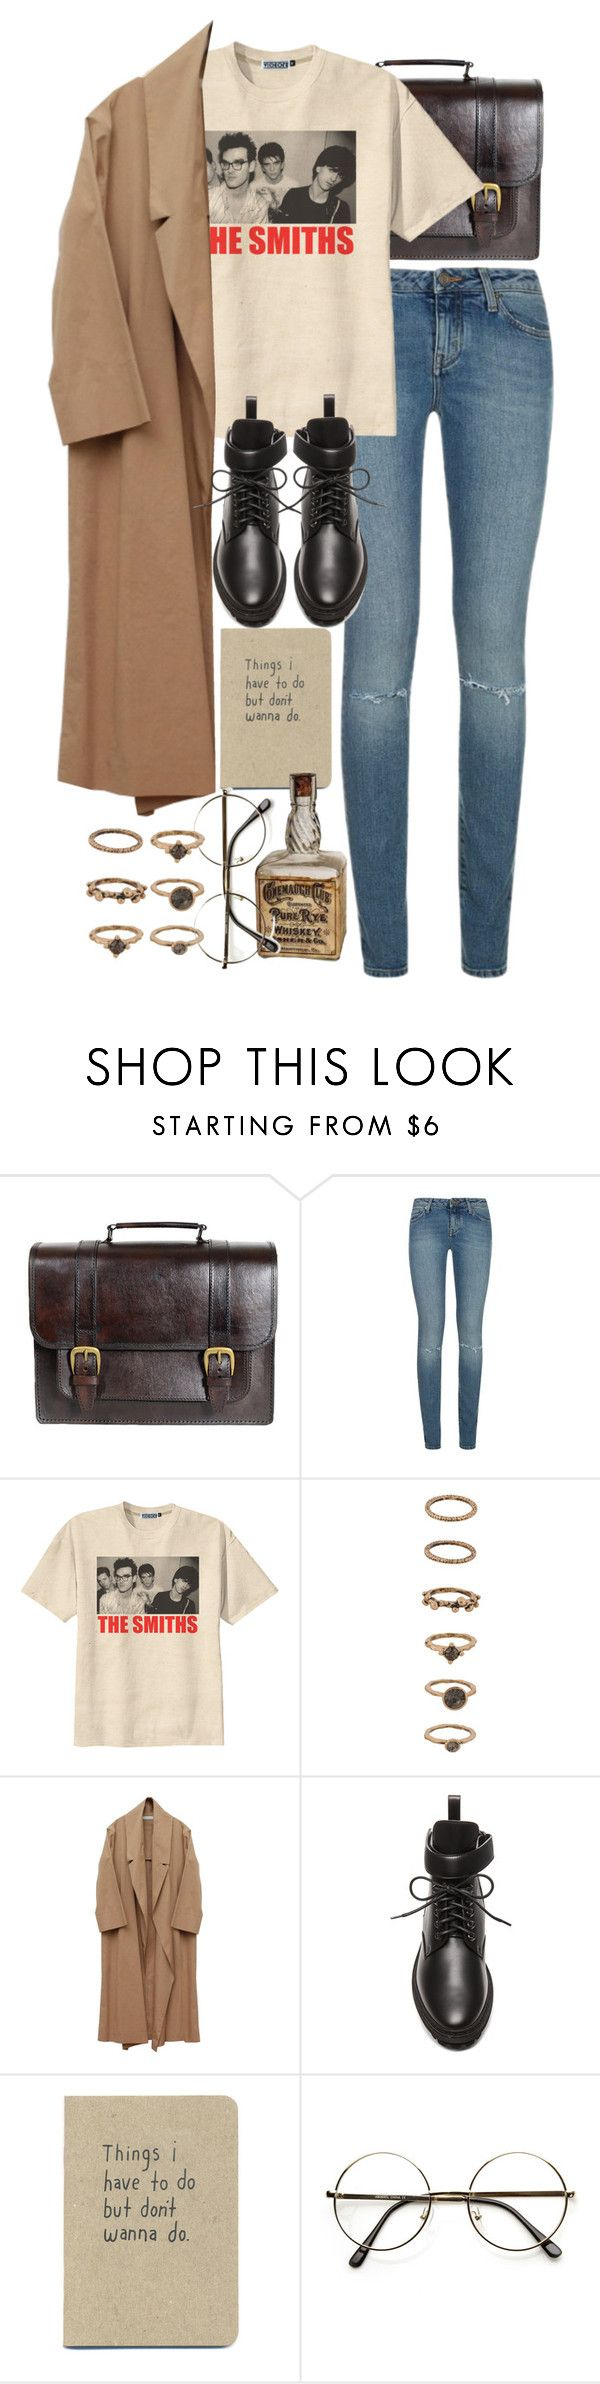 """""""Untitled #10082"""" by nikka-phillips ❤ liked on Polyvore featuring Beara Beara, Yves Saint Laurent, Retrò, Forever 21 and Balenciaga"""